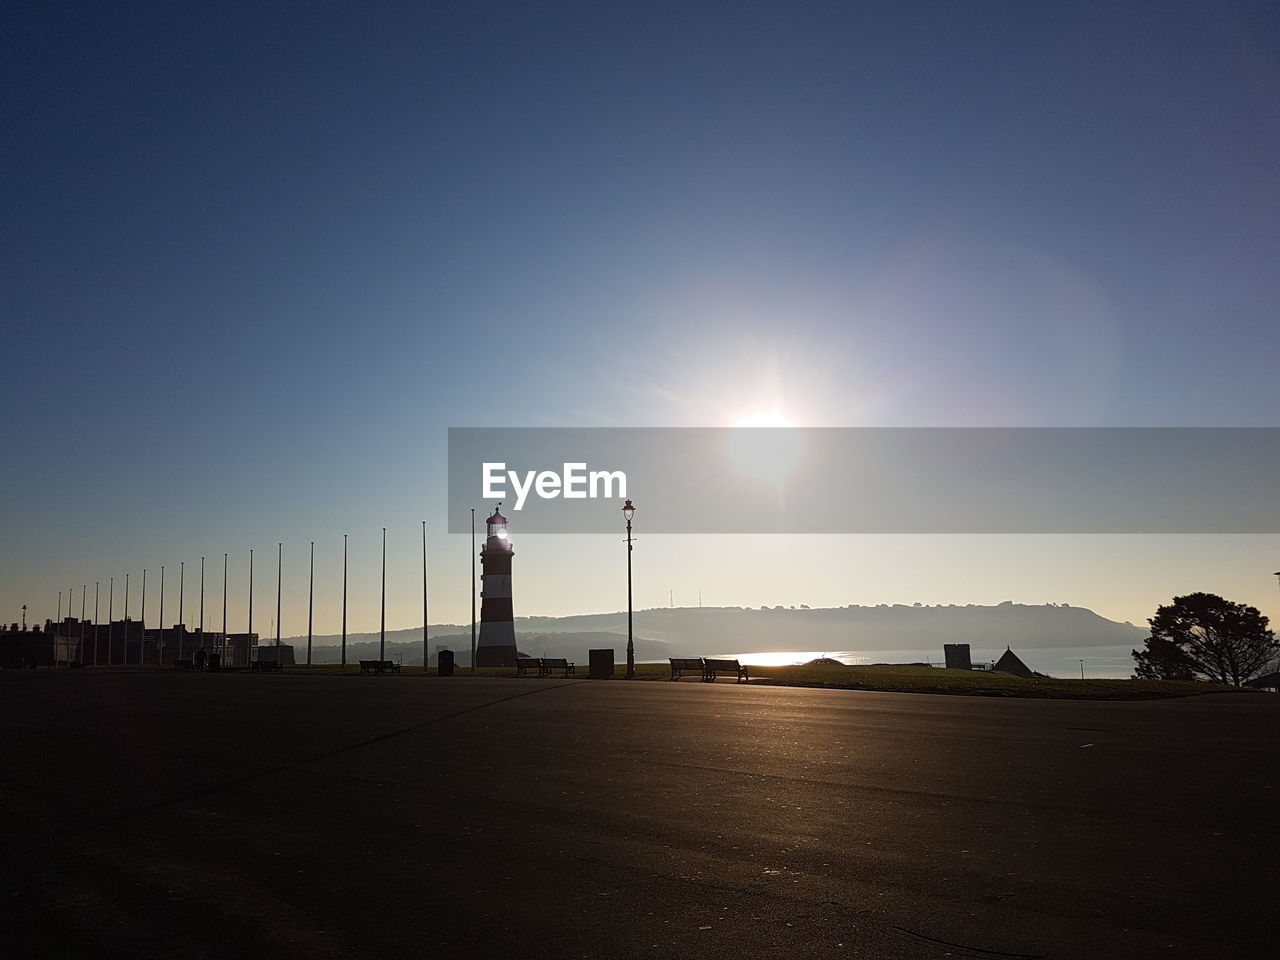 sky, sun, nature, architecture, sunlight, building exterior, built structure, sunset, tower, copy space, no people, scenics - nature, city, street, water, outdoors, sea, clear sky, beauty in nature, lighthouse, lens flare